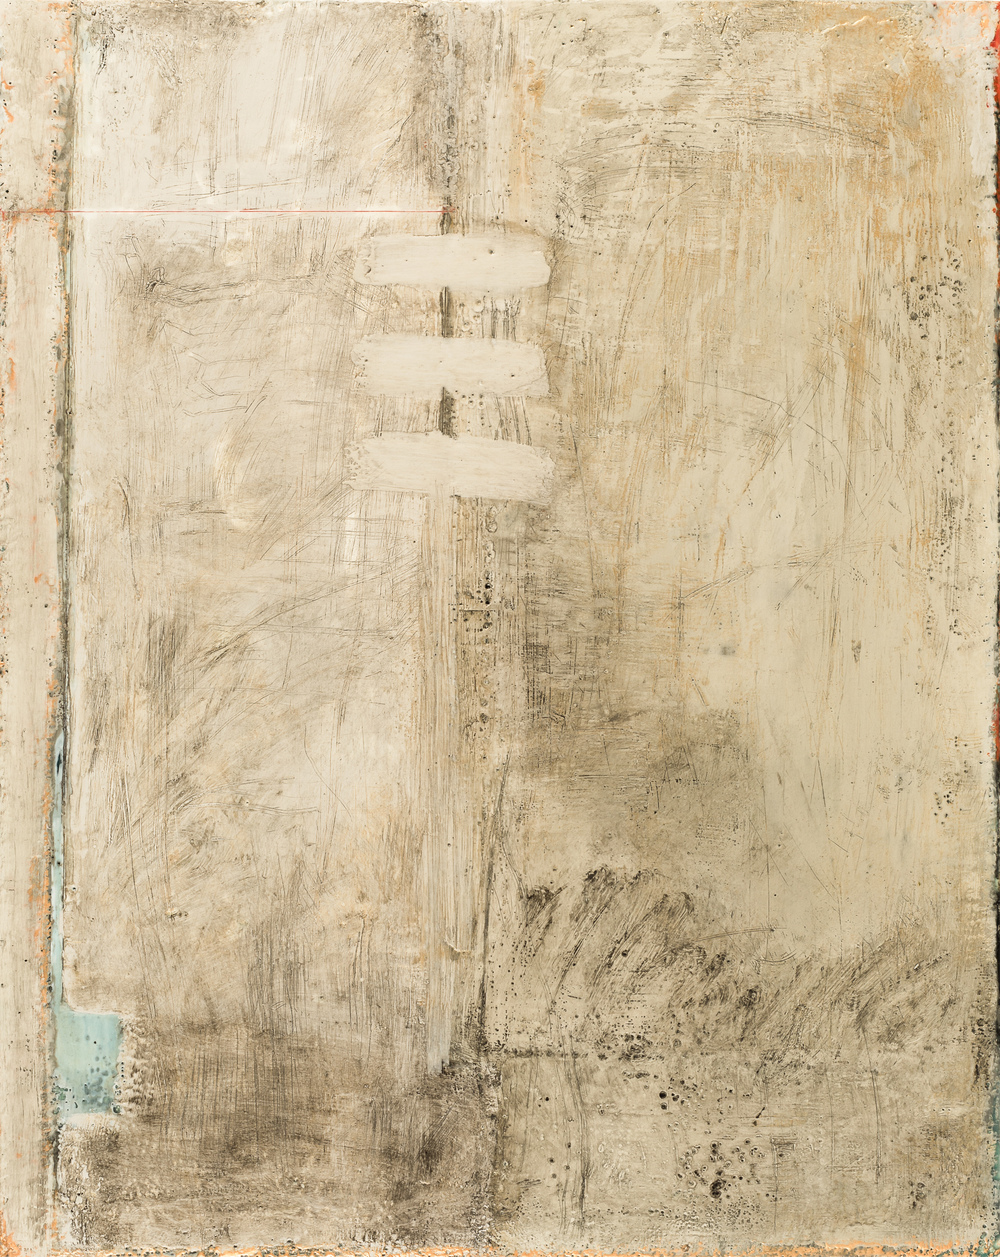 SG-086, Sue Gordon, To All Appearances 2, Encaustic on Birch Panel, 24x30, 2016